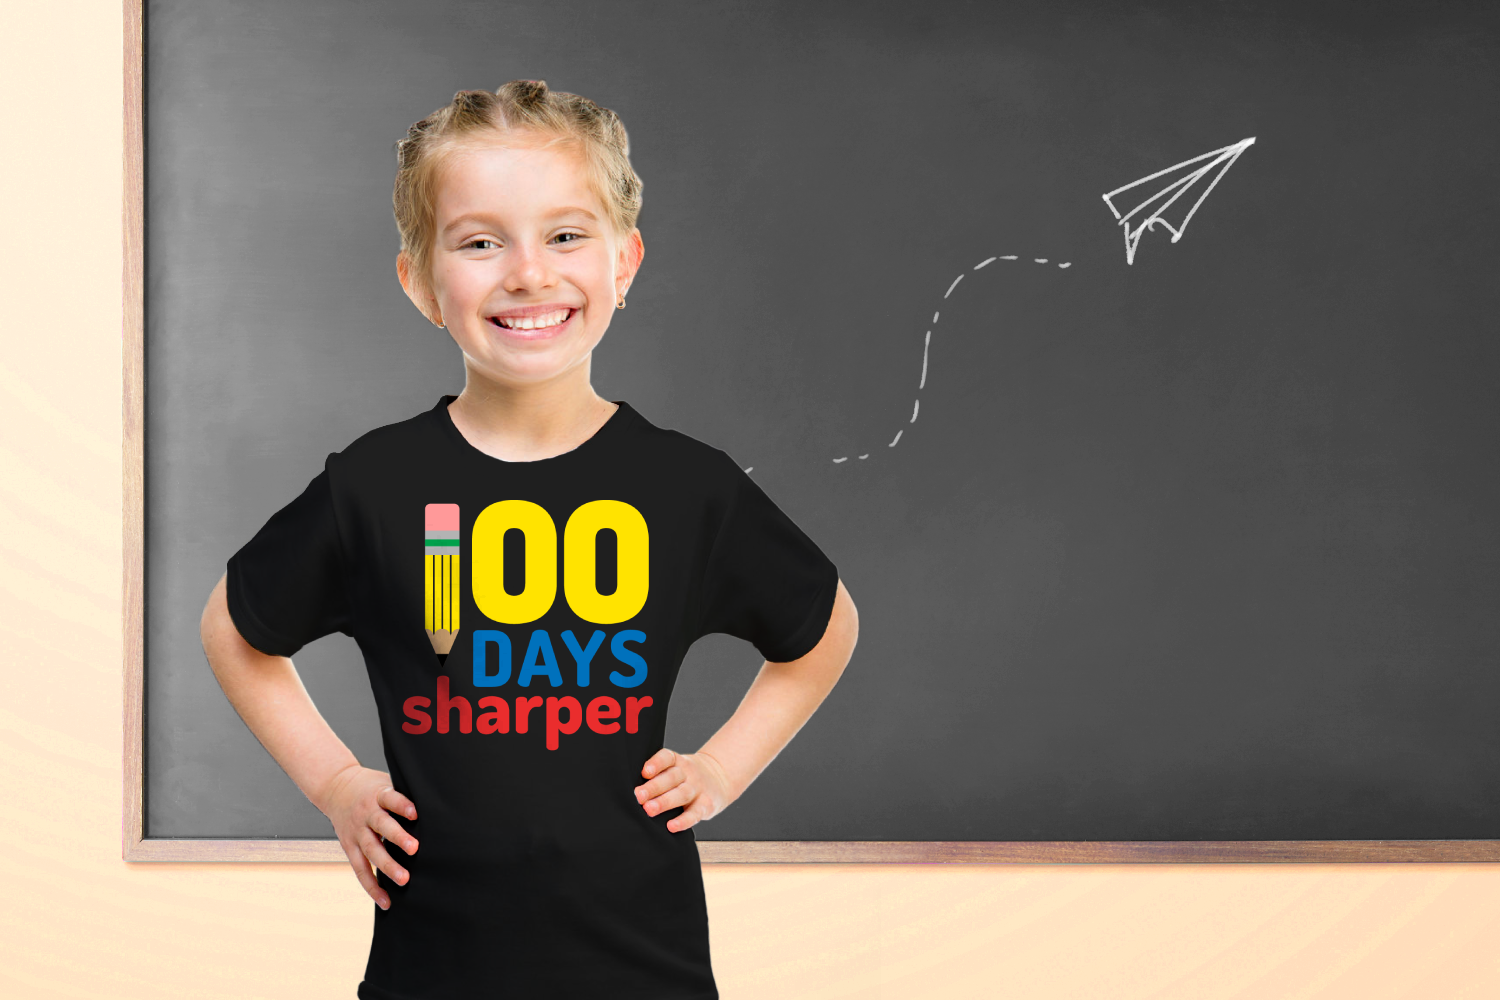 School 100 Days Sharper Pencil SVG File Cutting Template example image 1